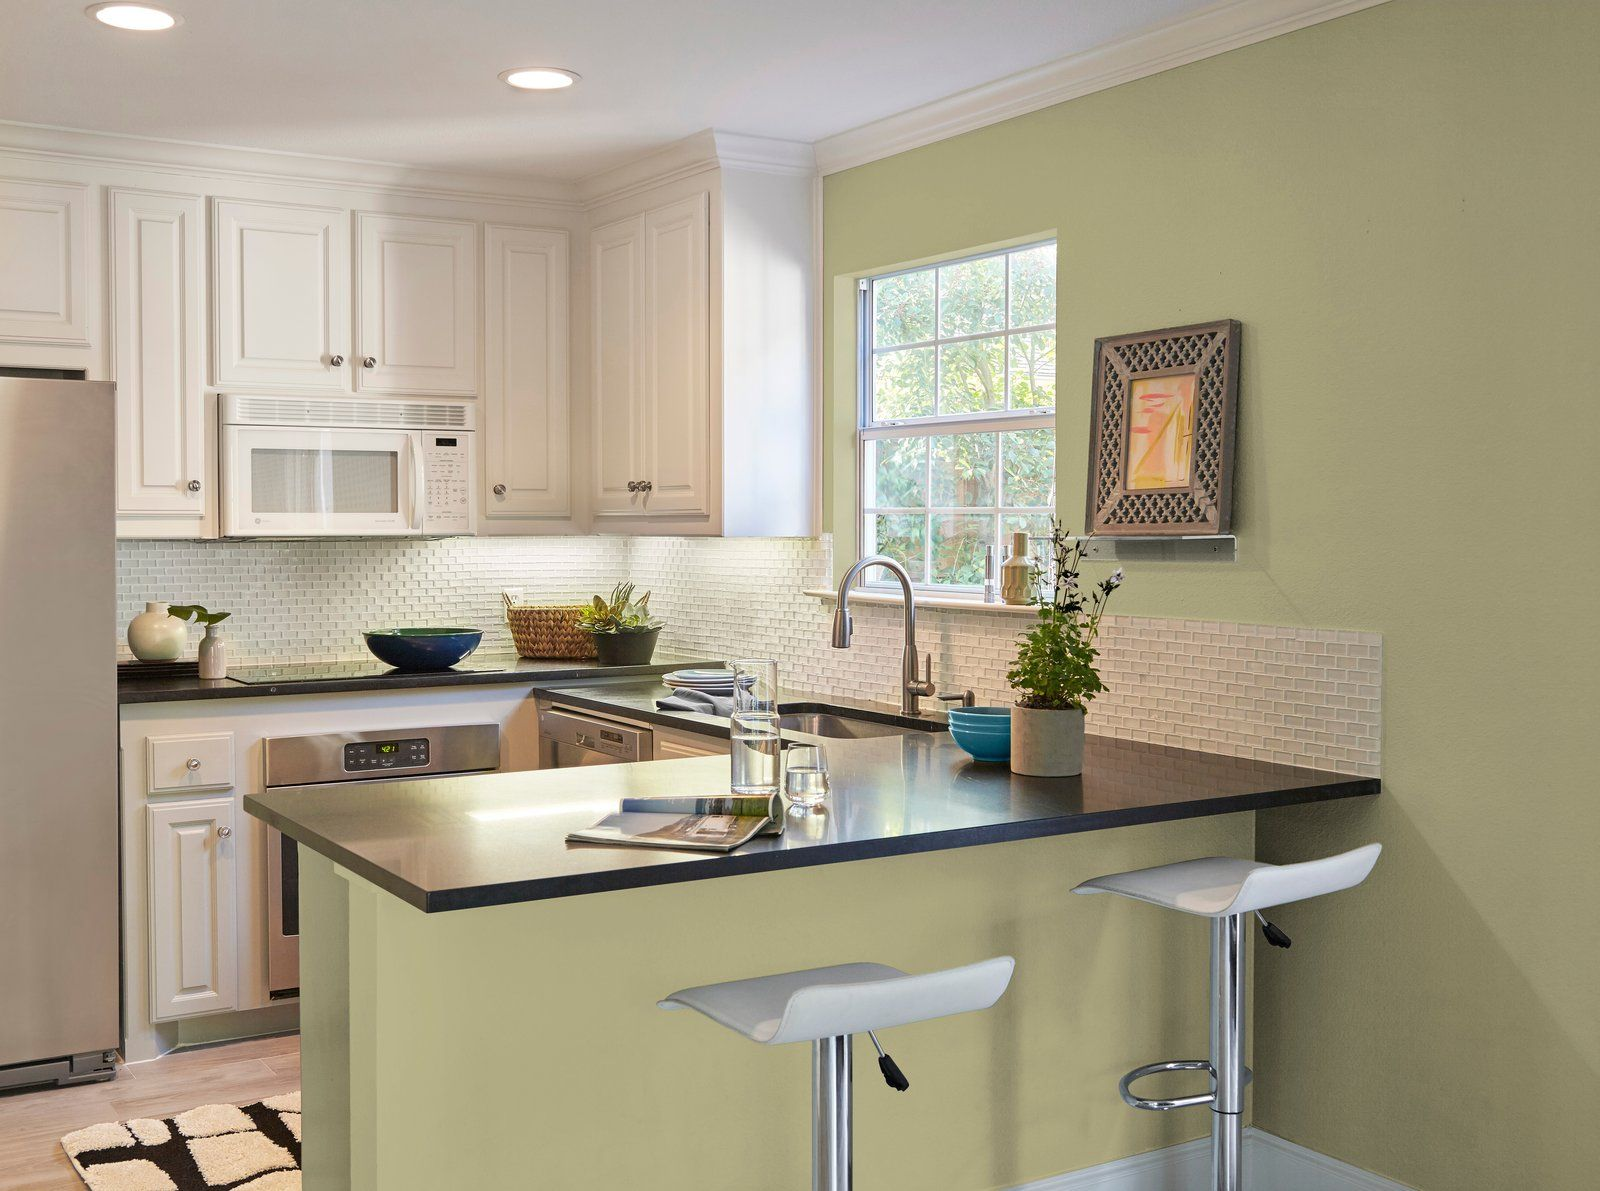 How To Use Behr's Color of the Year 2020 in 2020 Kitchen